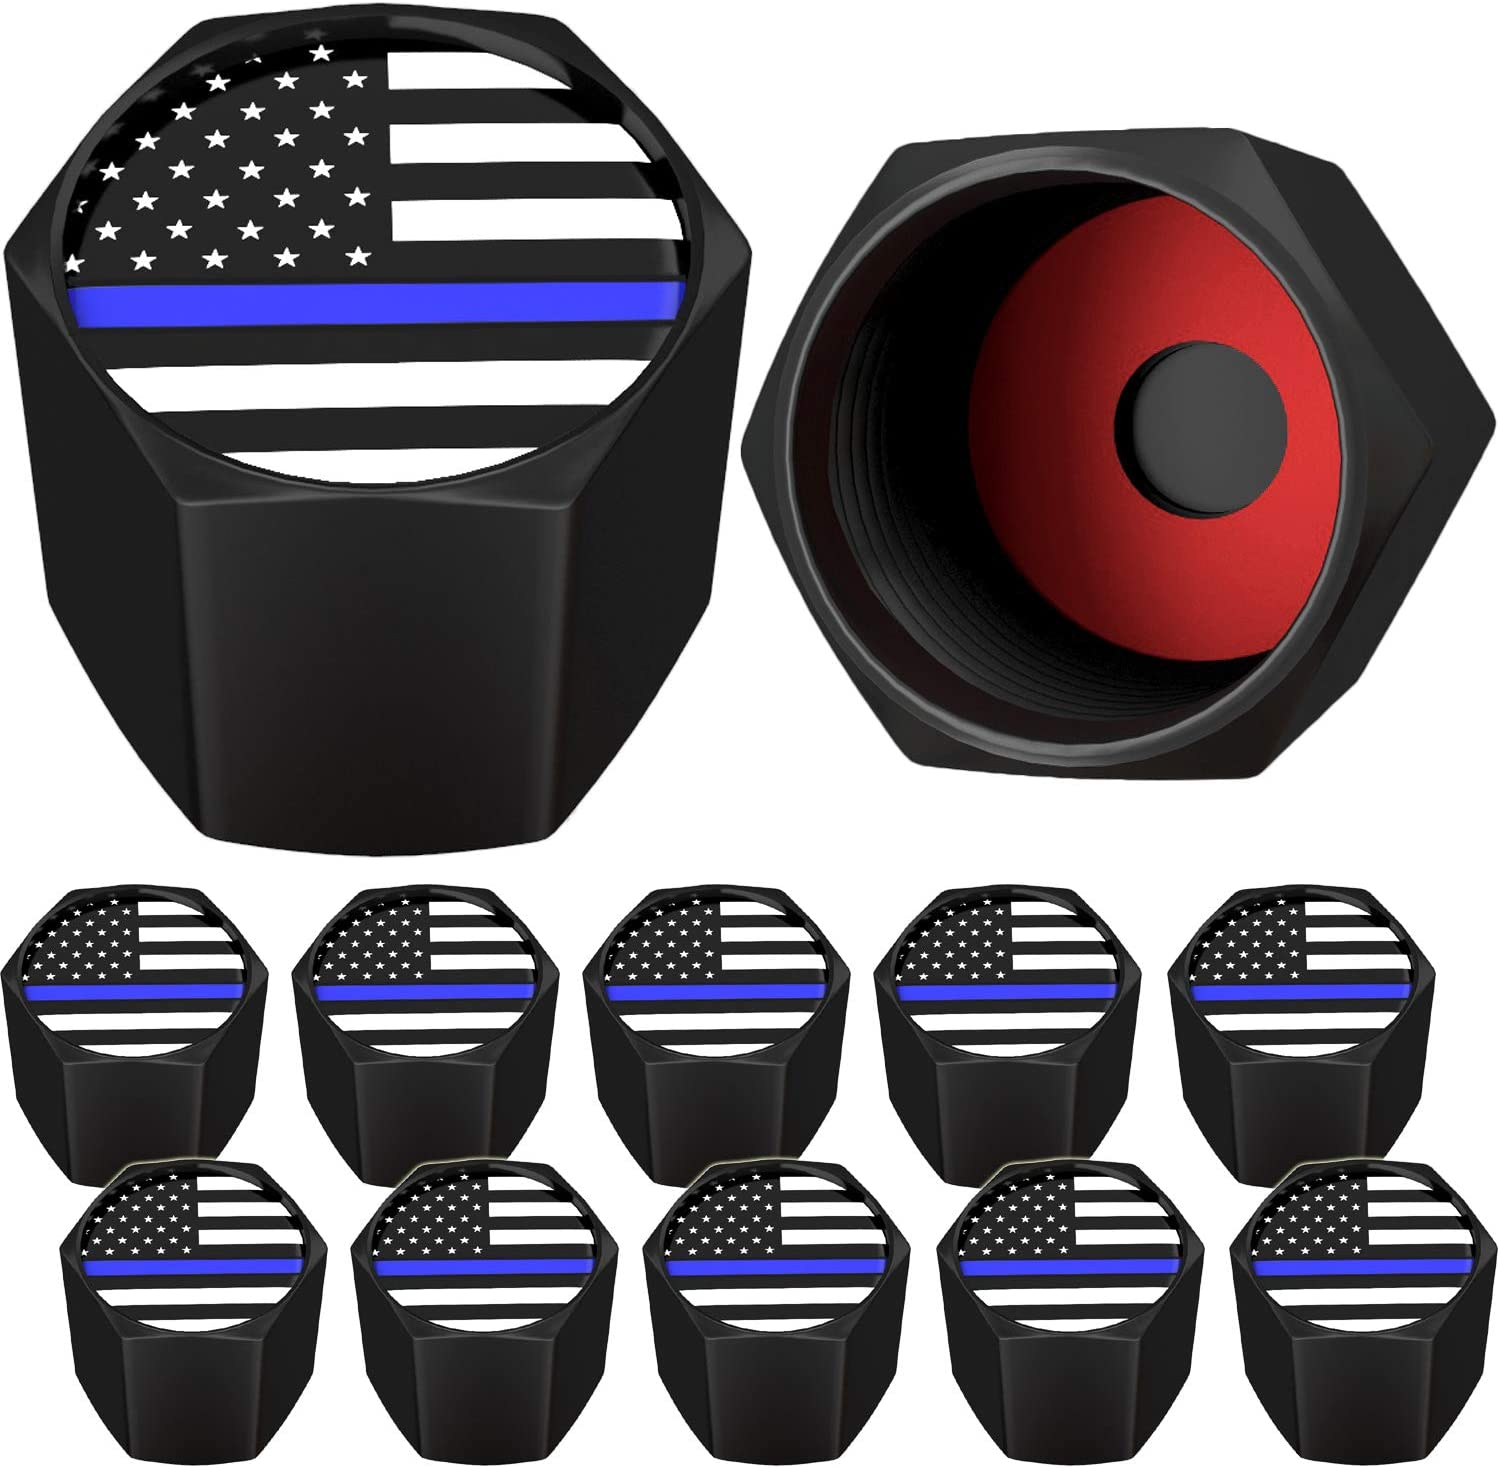 SAMIKIVA American Flag Tire Valve Stem Caps, USA with O Rubber Ring, Universal Stem Covers for Cars, SUVs, Bike, Bicycle, Trucks, Motorcycles, Airtight Heavy Duty (12 Pack) (Black Blue USA (12 Pack))